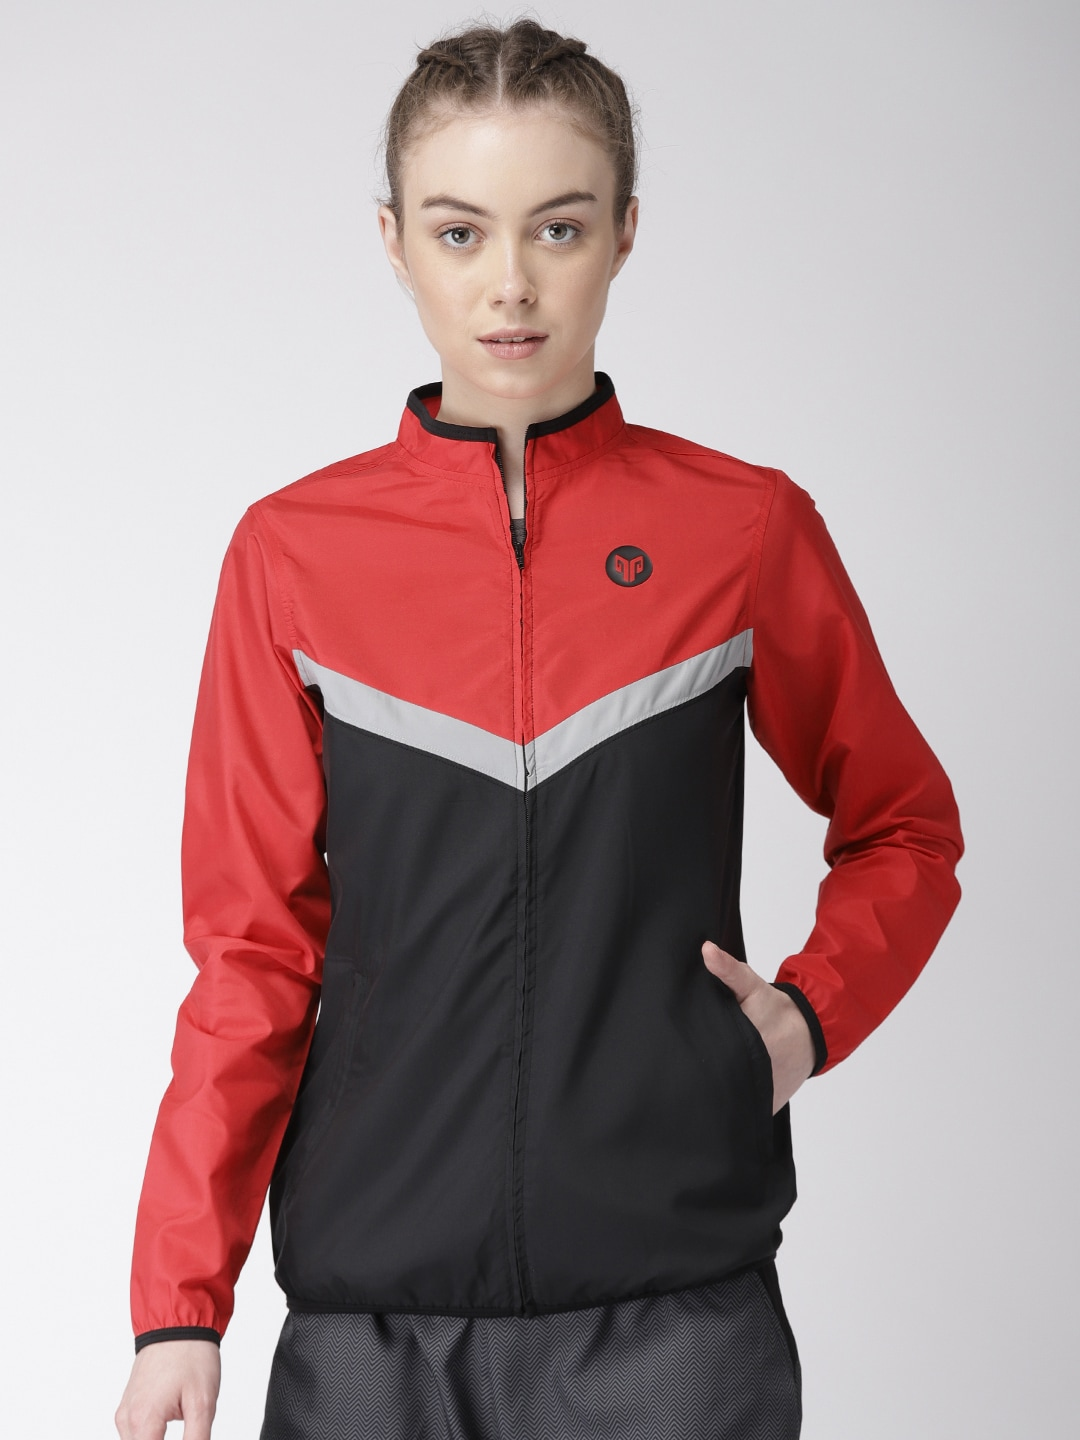 347194fa9b7e0f Track Jackets - Buy Track Jackets online in India